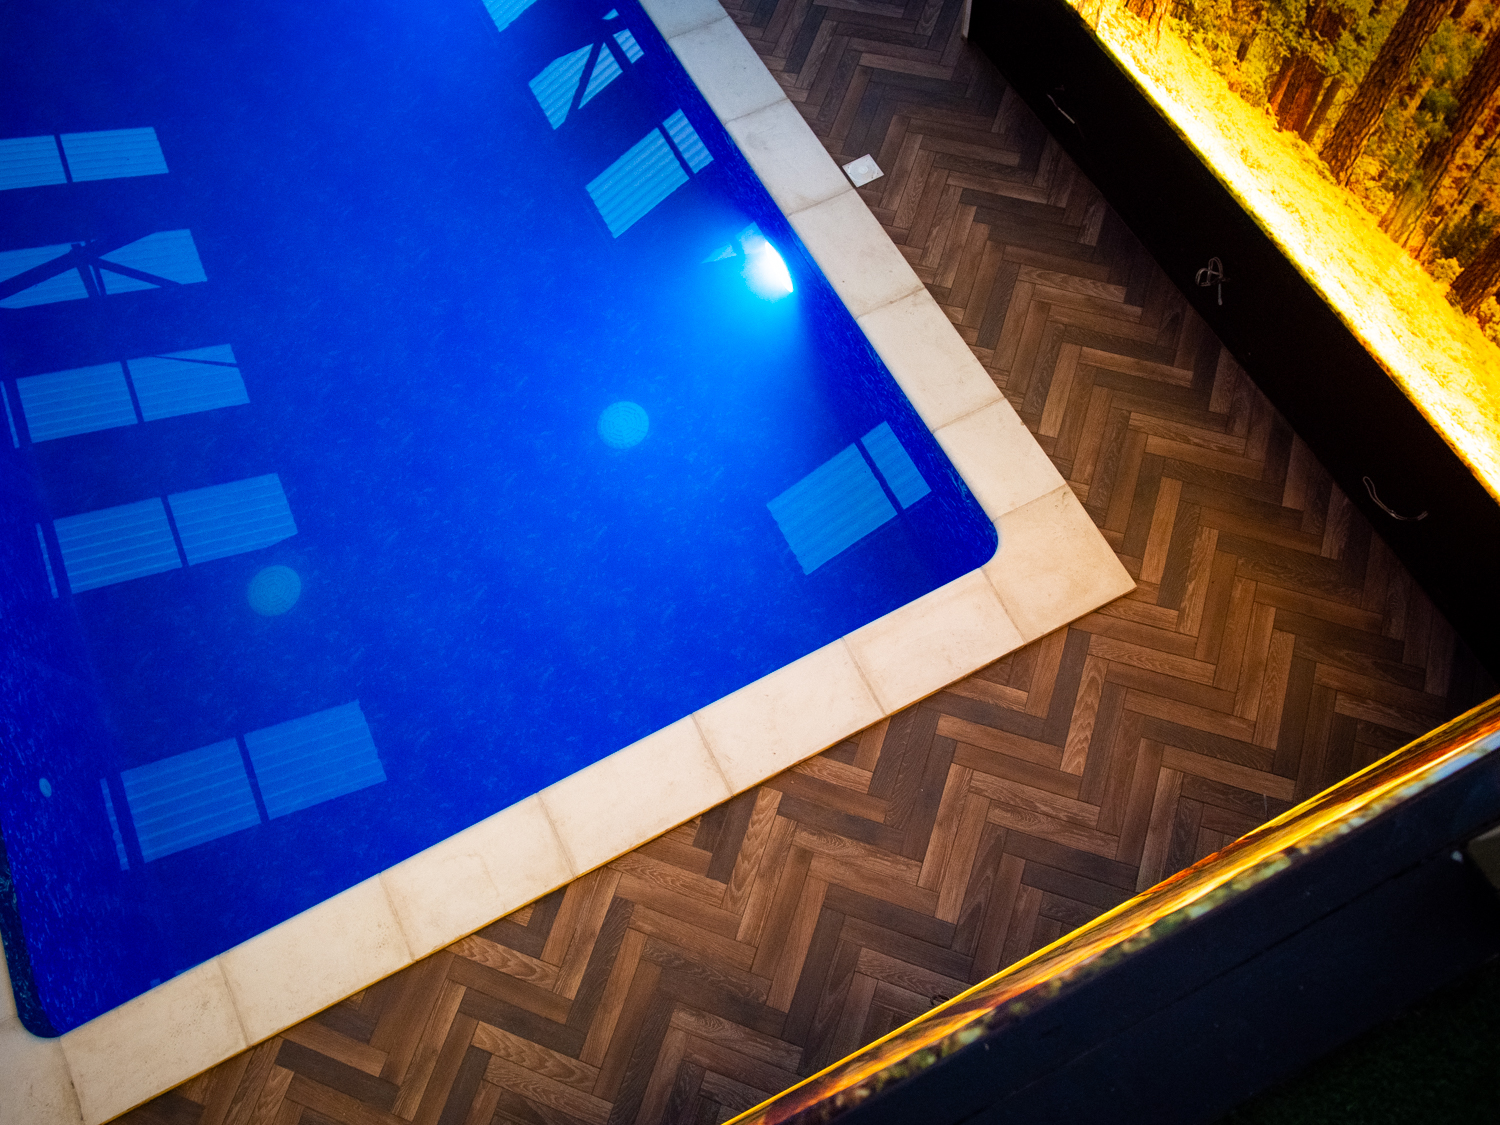 Heated by renewable energy - Our luxurious heated indoor swimming pool is powered by our wood-chip Bio-mass, an environmentally friendly alternative that uses renewable sources to convert into power.